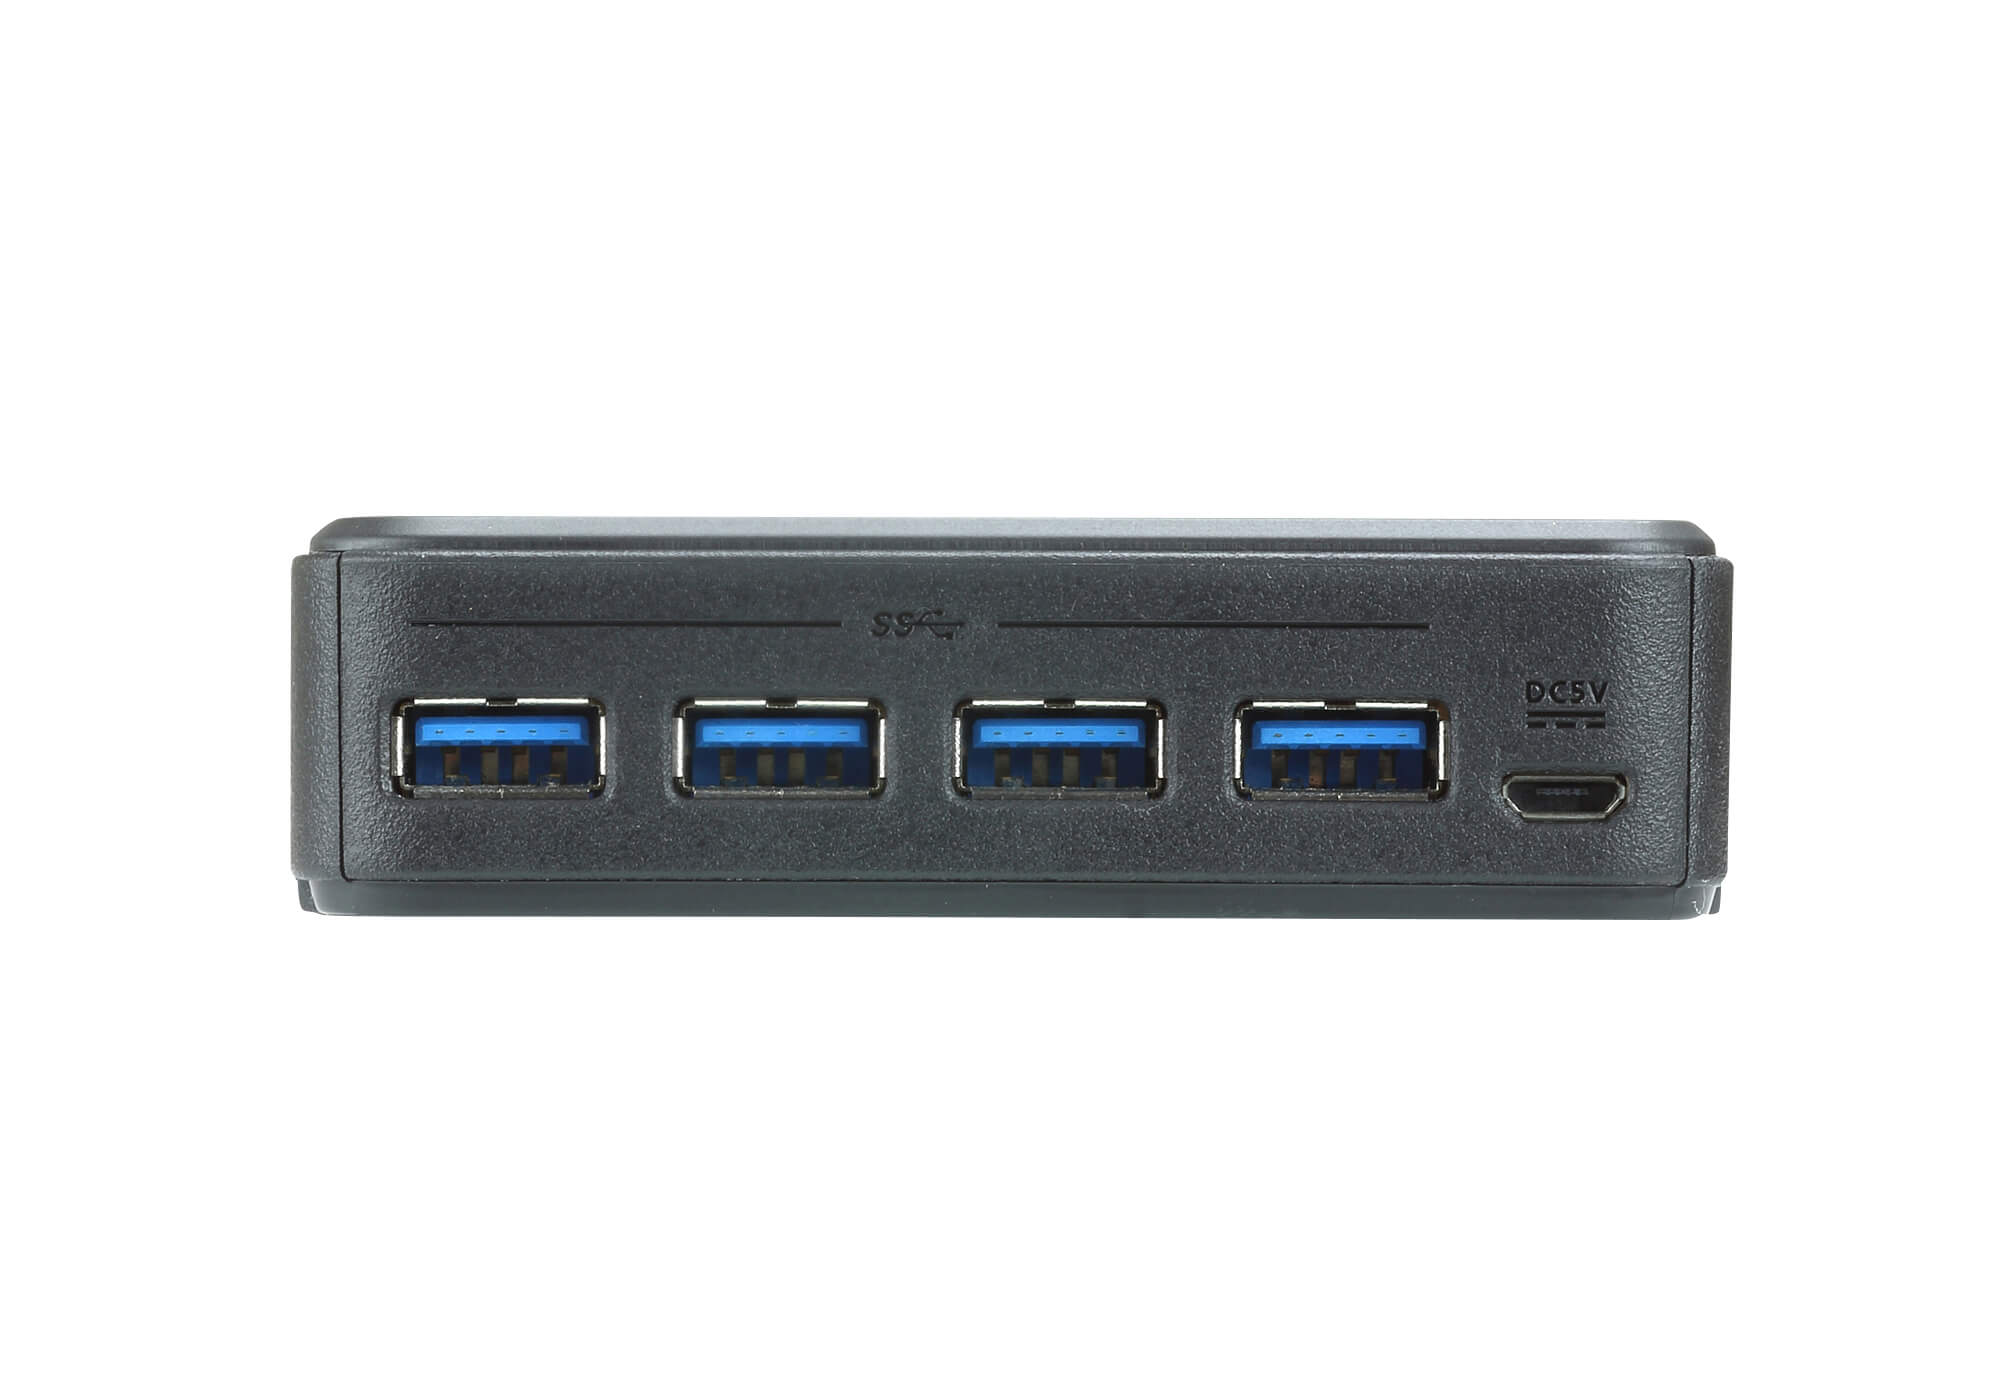 4 x 4 USB 3.2 Gen1 Peripheral Sharing Switch-3